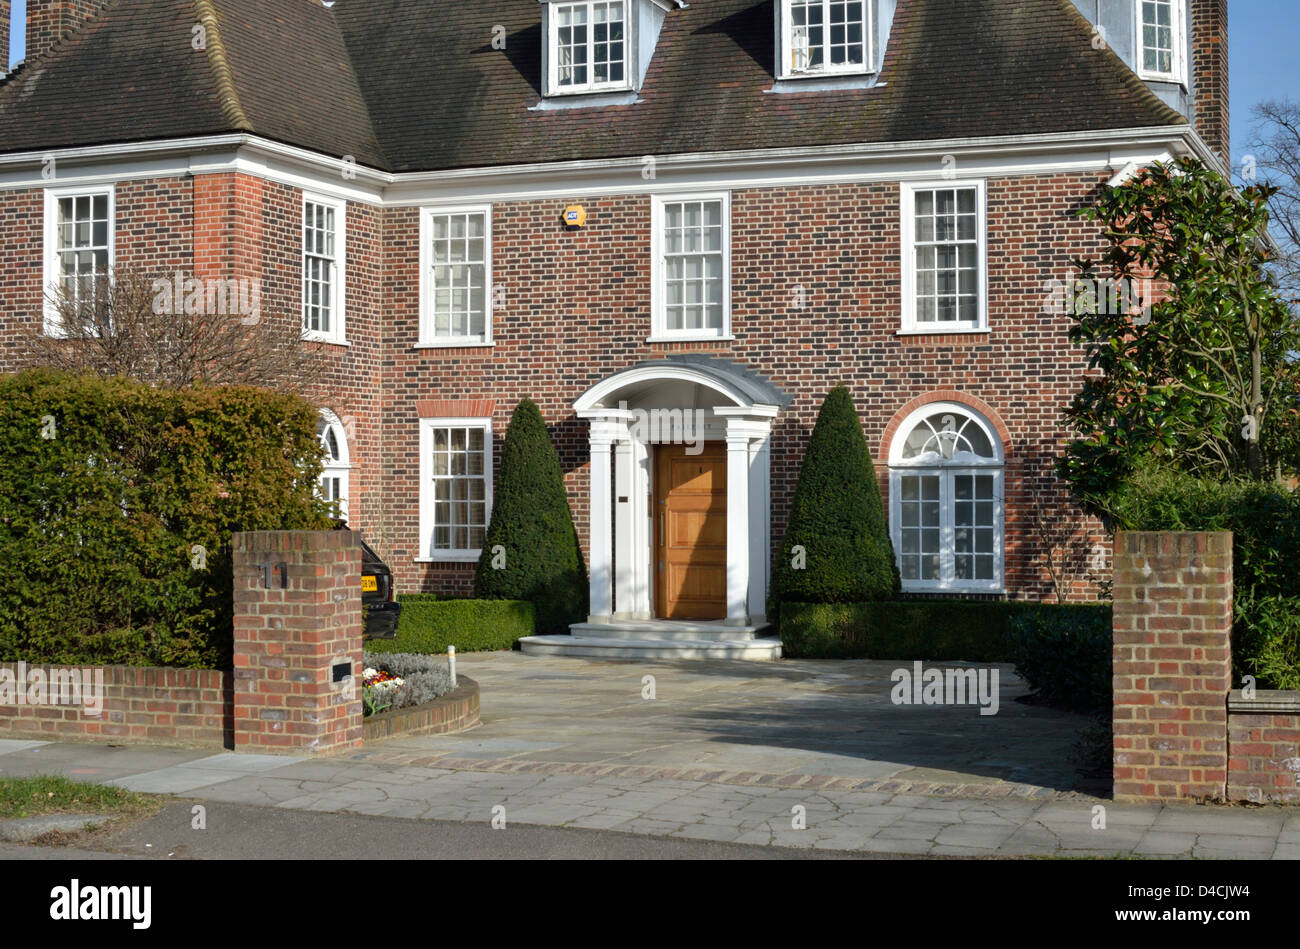 Ravishing Winnington Stock Photos  Winnington Stock Images  Alamy With Fetching Mansion In Winnington Road Hampstead Garden Suburb N London Uk  Stock With Divine Opening Times Kew Gardens Also Boston Garden Centre In Addition Large Garden Ponds And Garden Centre Tyne And Wear As Well As San Diego Flower Garden Additionally Savage Garden From Alamycom With   Fetching Winnington Stock Photos  Winnington Stock Images  Alamy With Divine Mansion In Winnington Road Hampstead Garden Suburb N London Uk  Stock And Ravishing Opening Times Kew Gardens Also Boston Garden Centre In Addition Large Garden Ponds From Alamycom